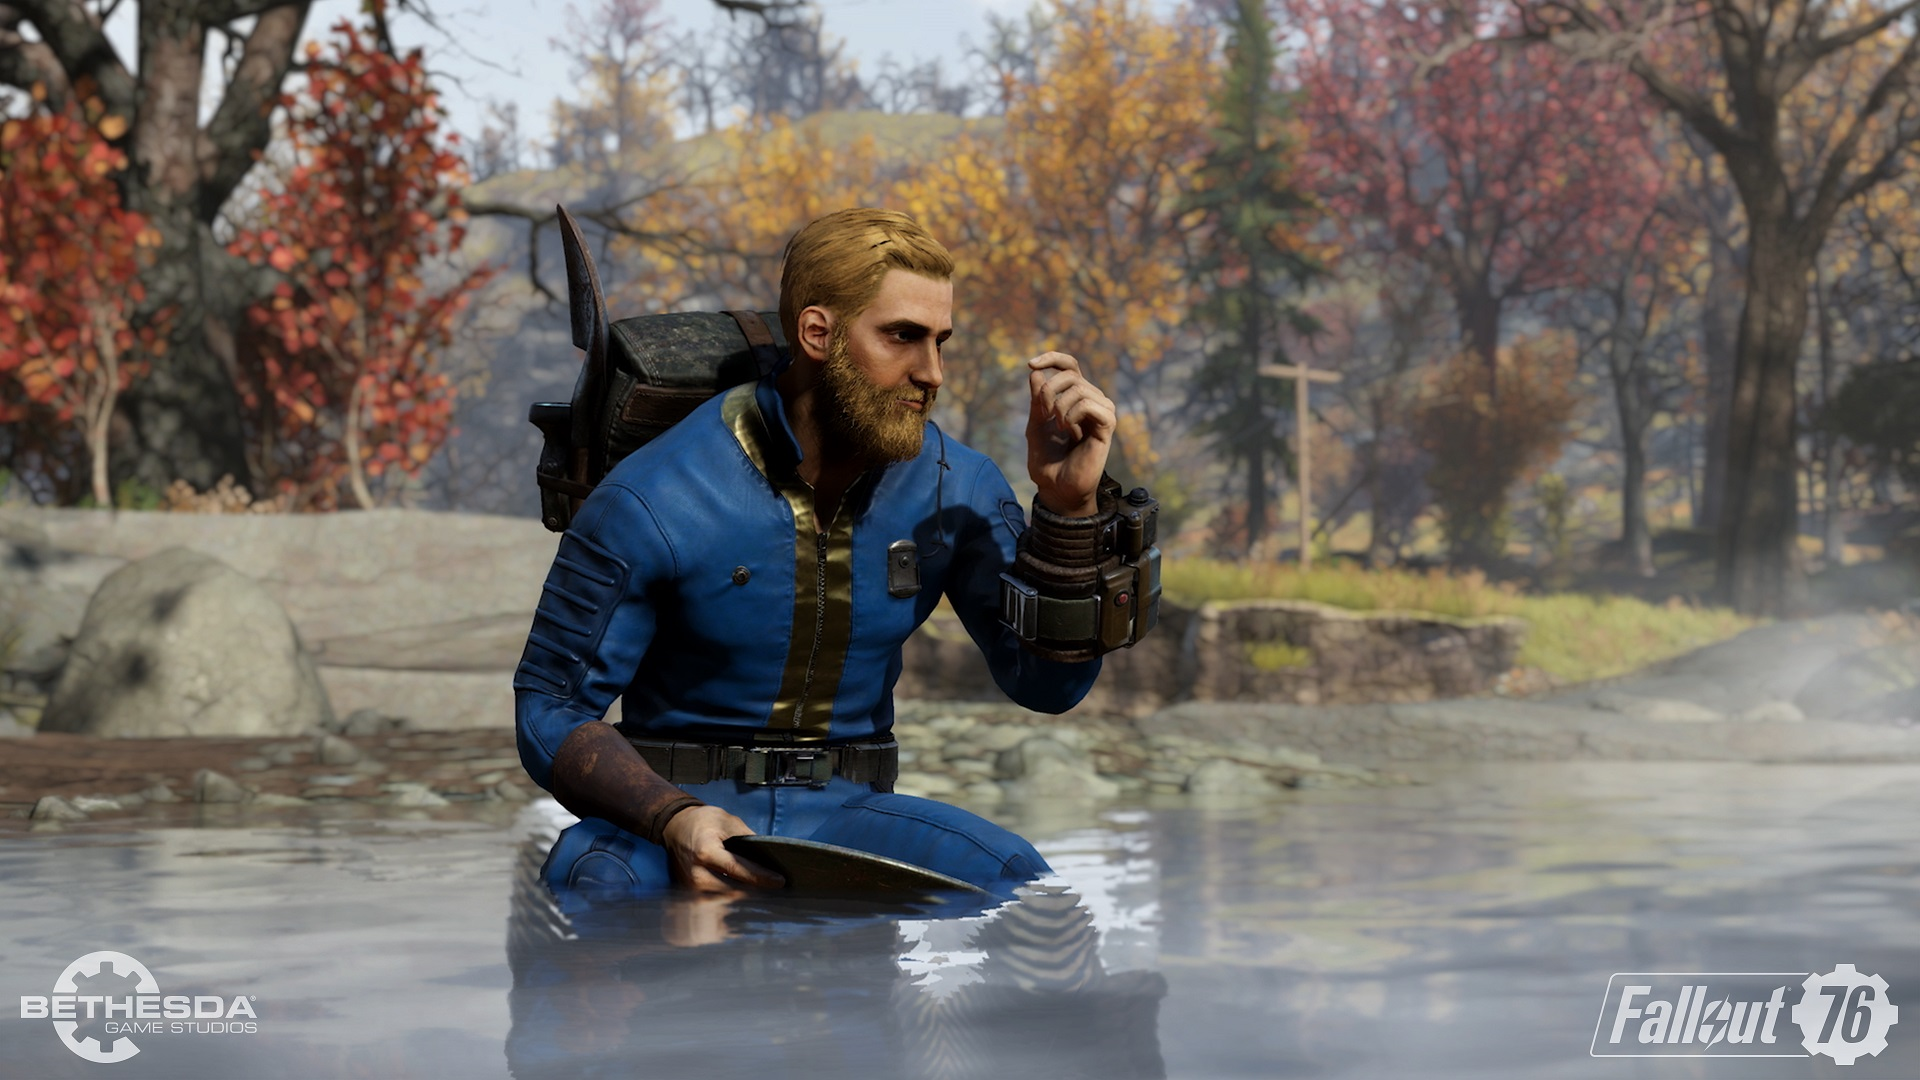 Bethesda left apologizing and clarifying Fallout 76's seasons are free screenshot